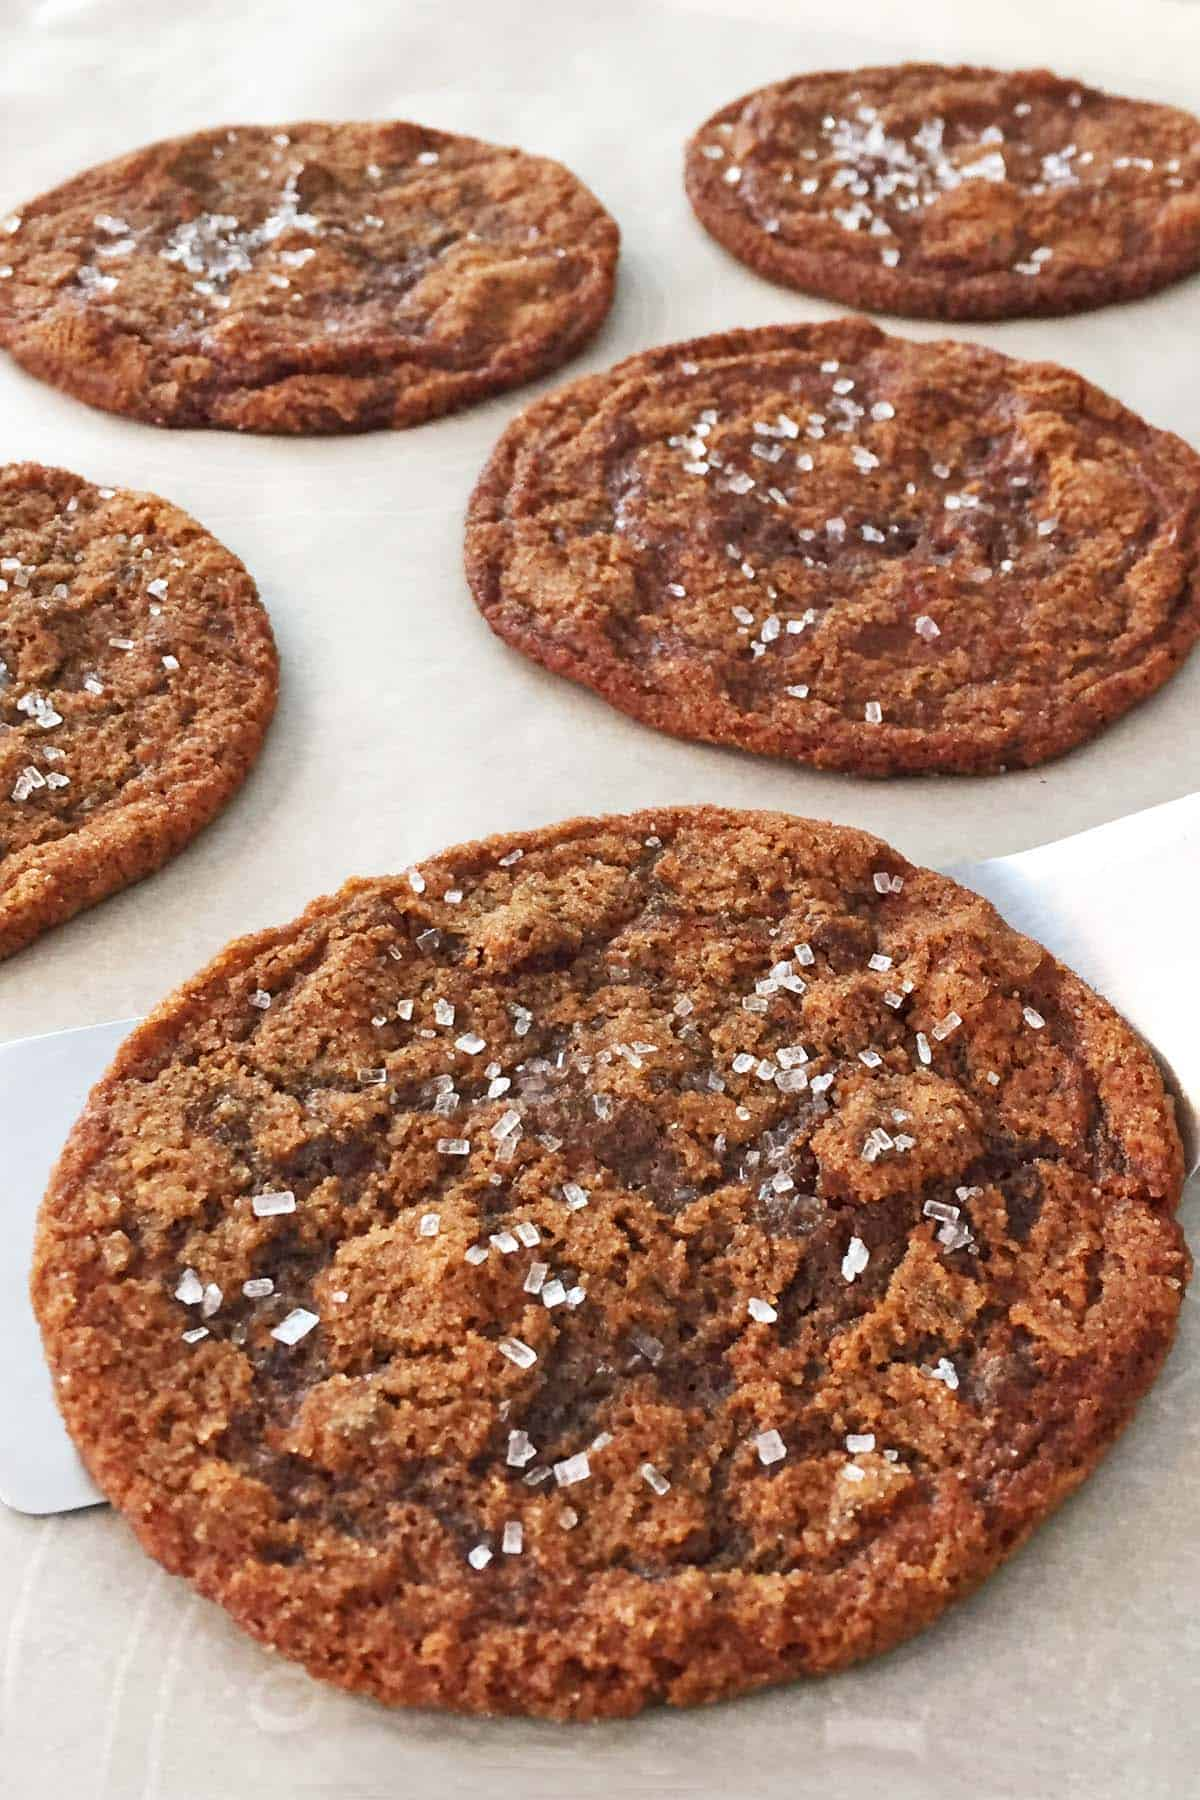 Five ginger bacon grease cookies on a parchment lined baking sheet